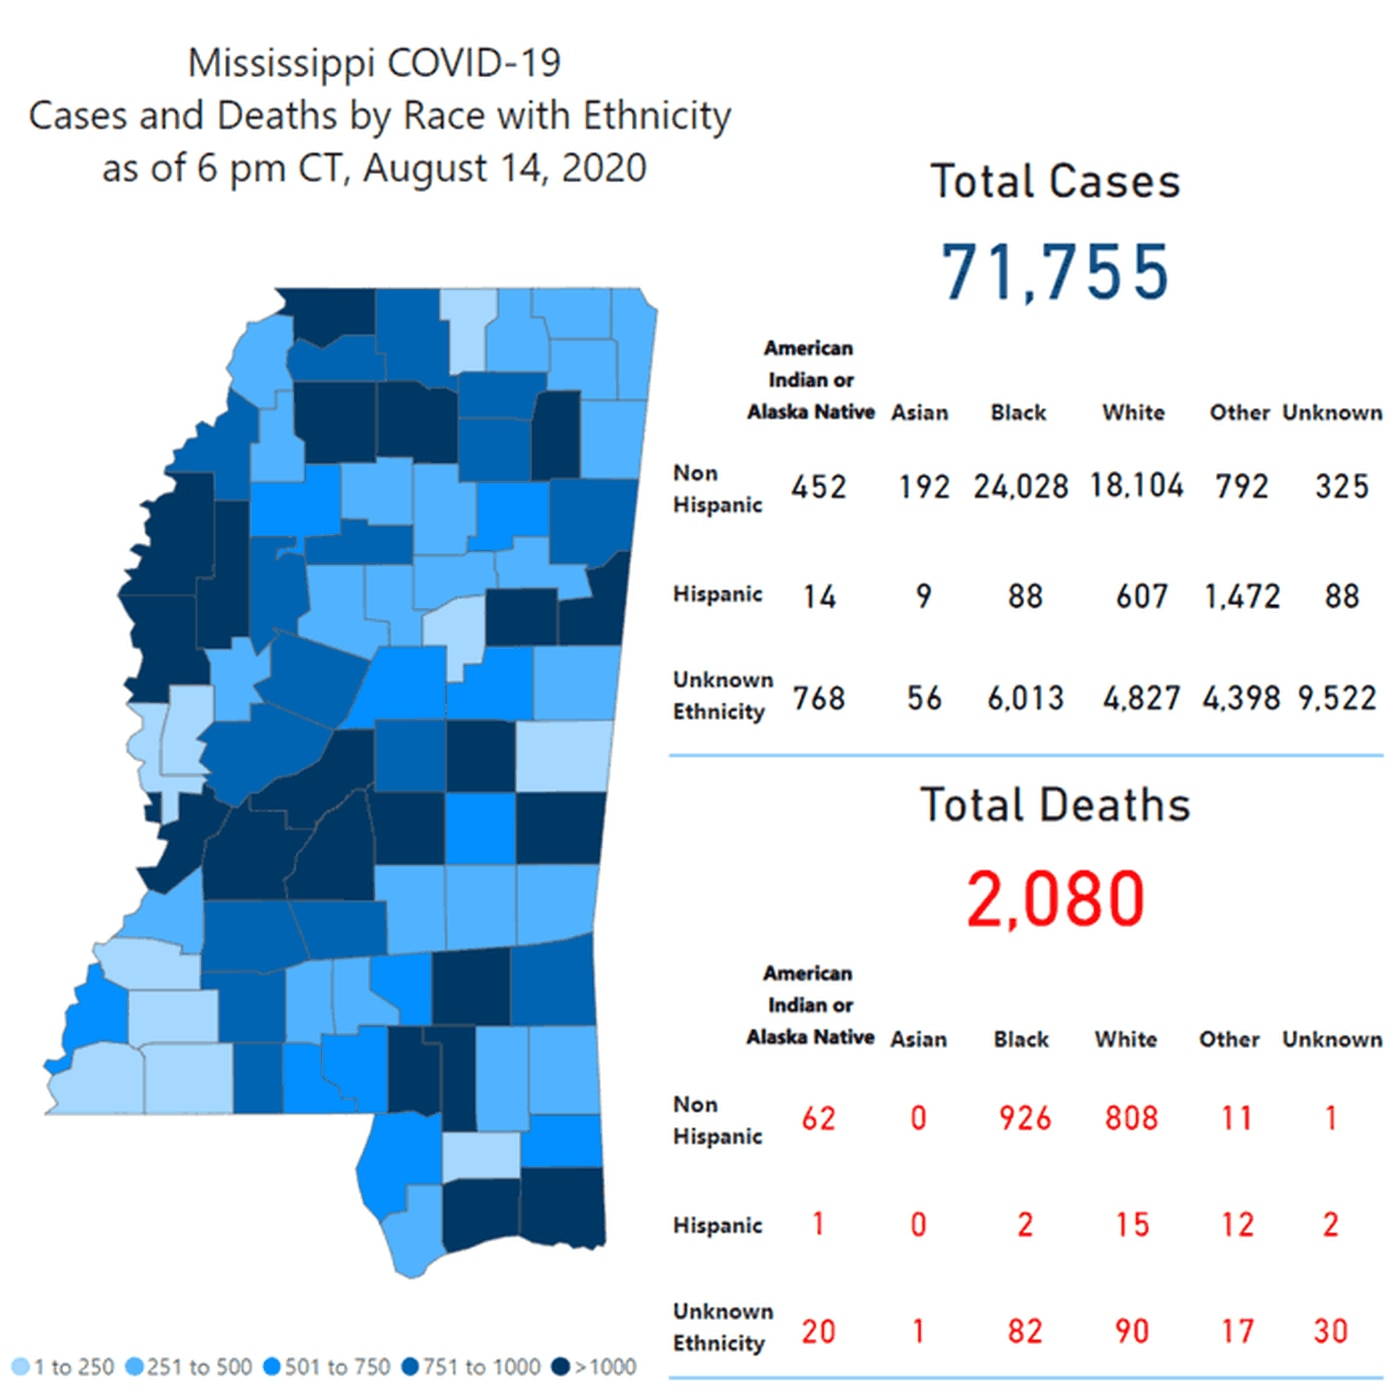 As of Aug. 14 at 6pm, there have been a total of 71,755 cases investigated, which includes 1,708 probable cases. There have been 2,080 deaths investigated, including 80 probable deaths.